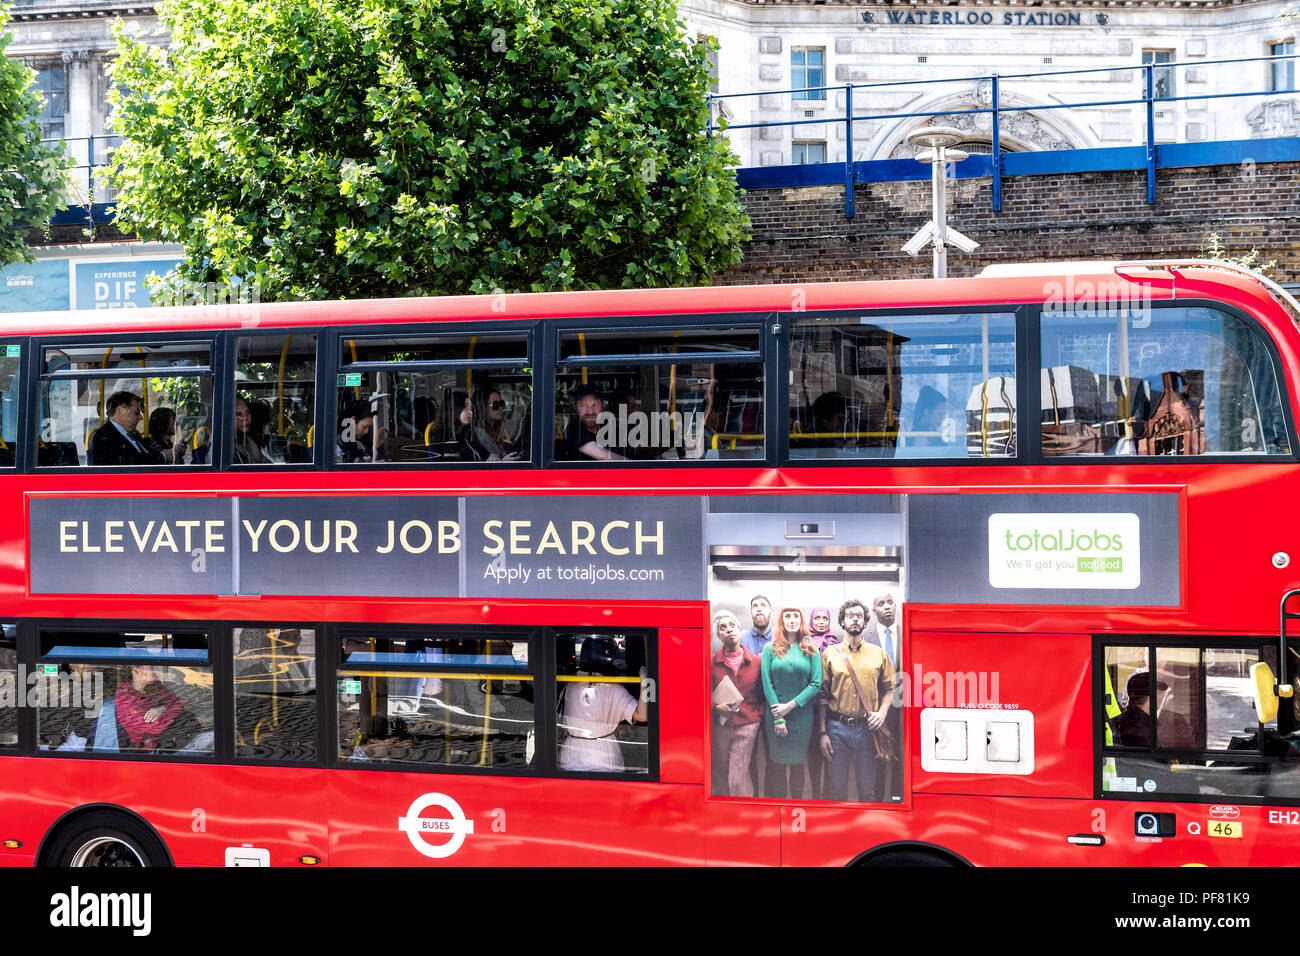 London, UK - June 22, 2018: View on double decker bus in city with ad, advertisement board advertising TotalJobs, online job, work search, recruitment - Stock Image